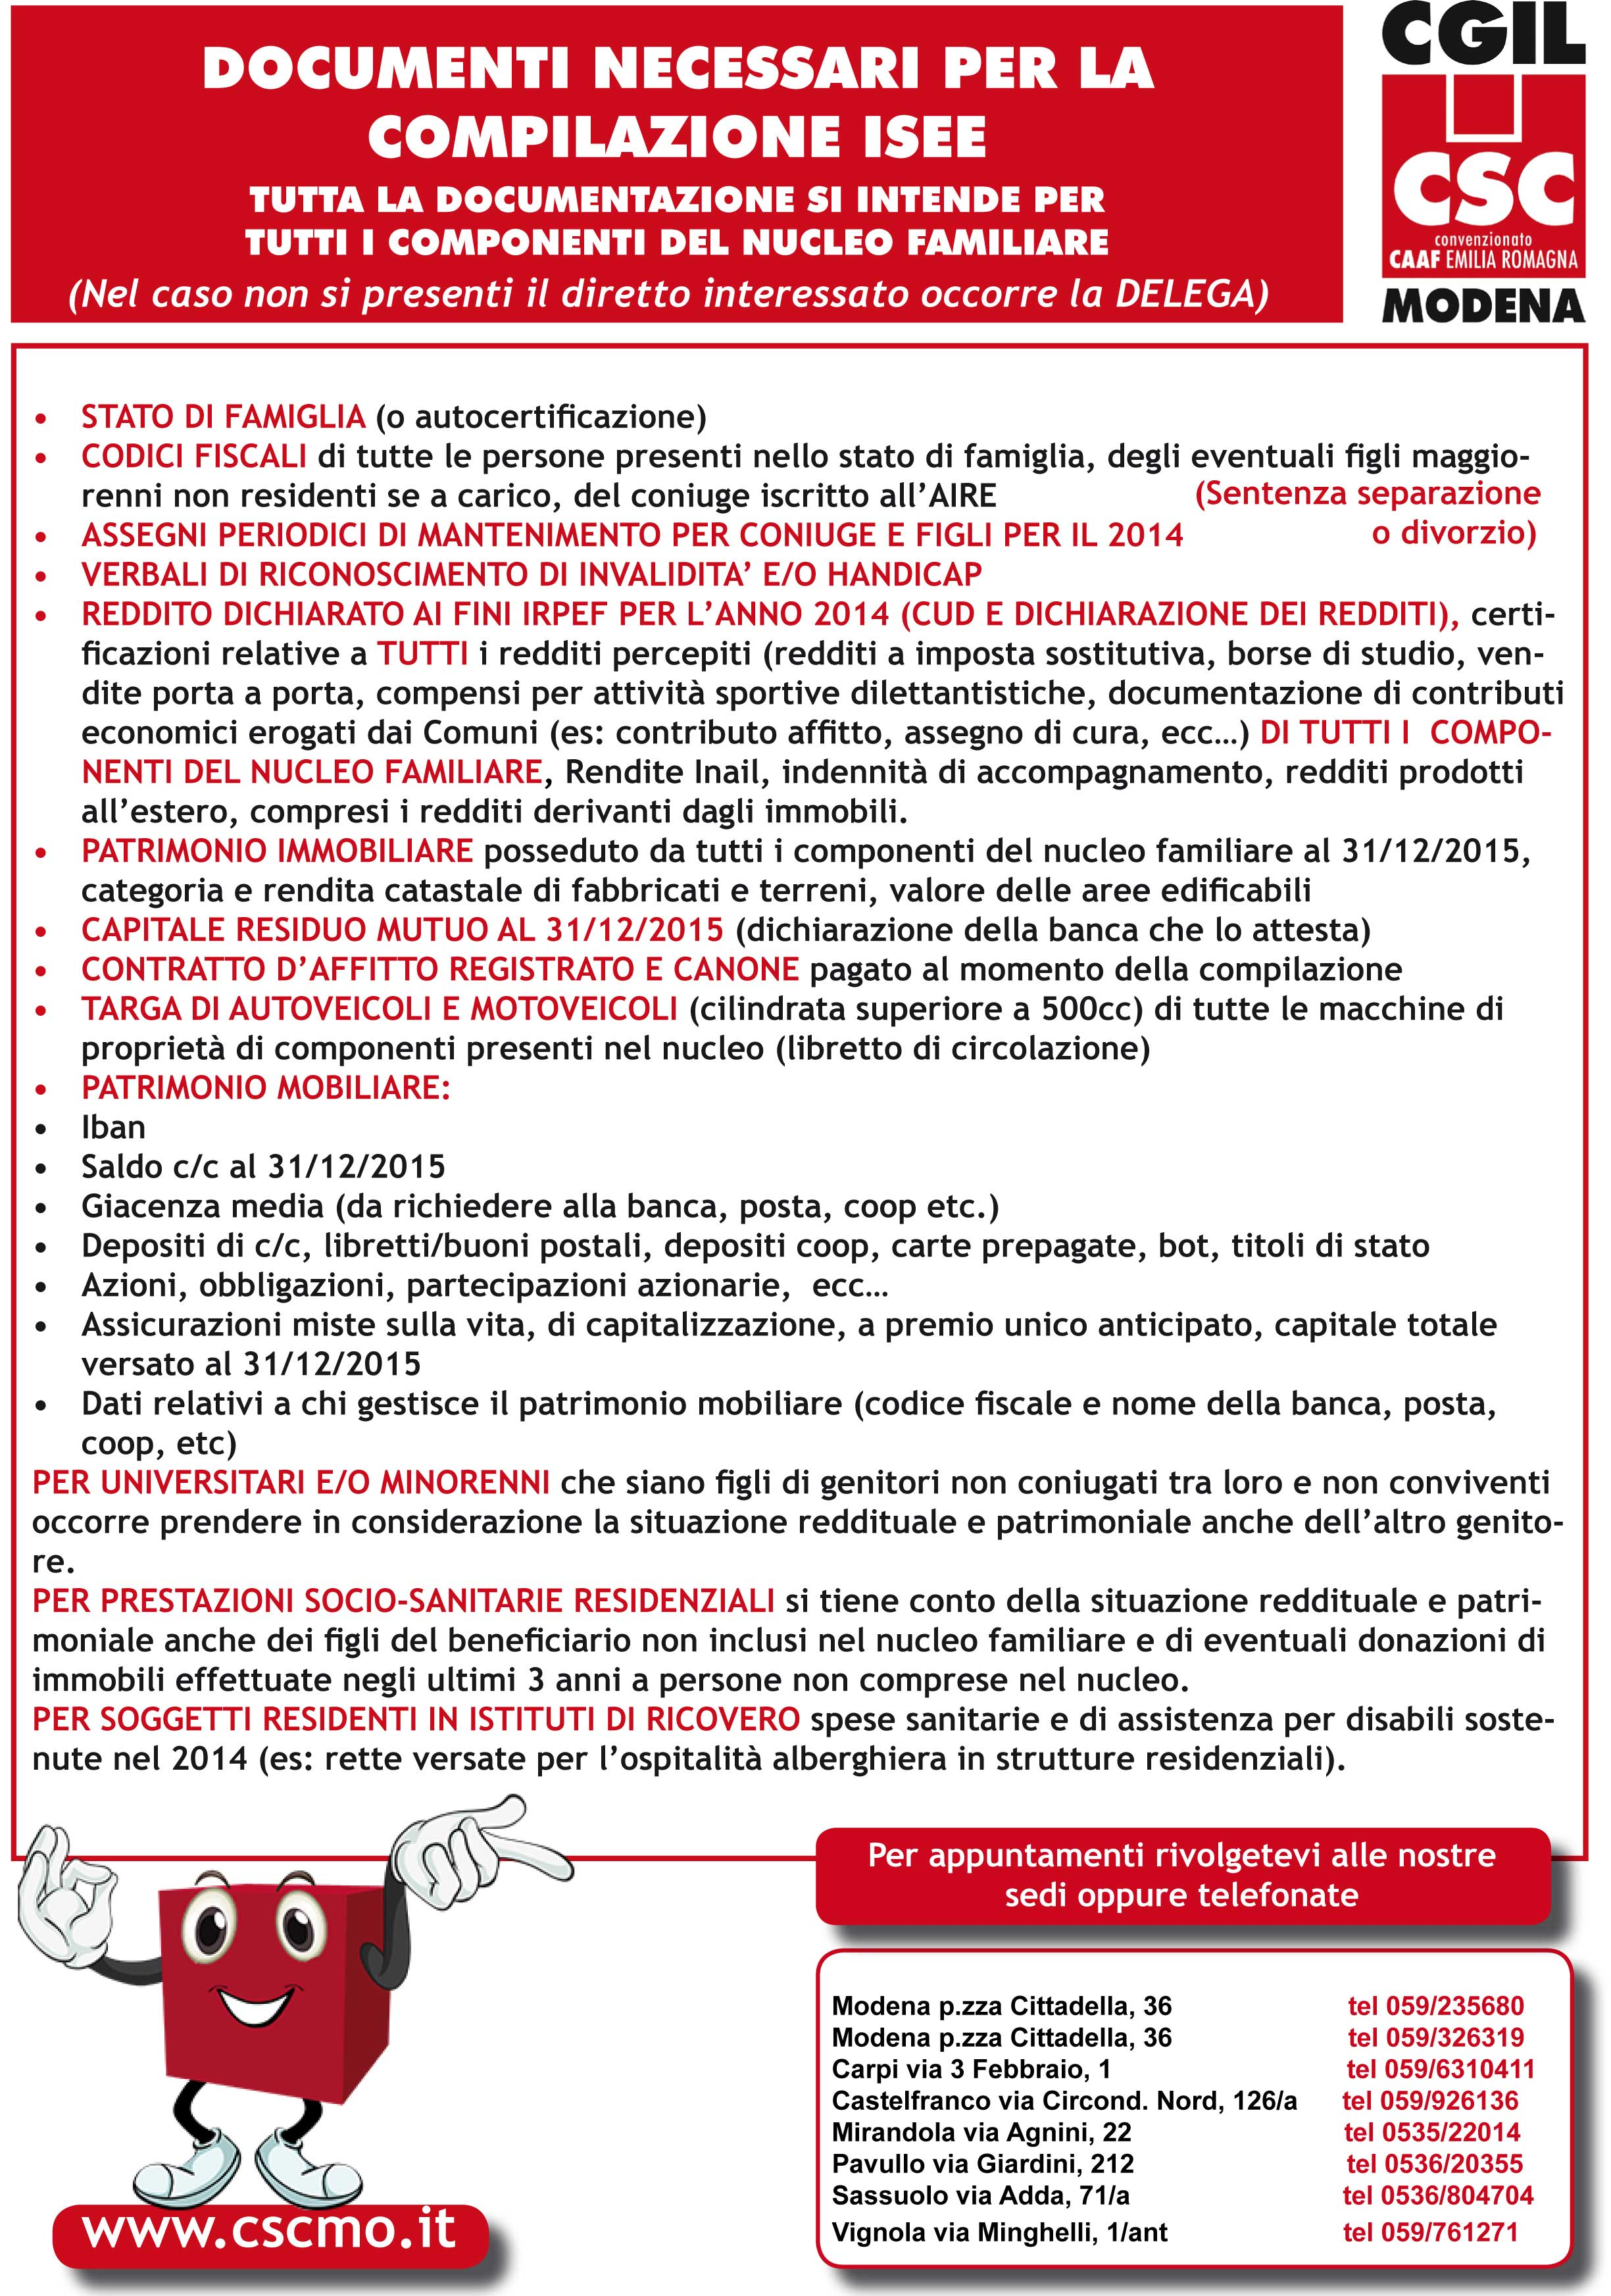 Documenti isee 2016 c s c caf cgil modena for Documenti per 730